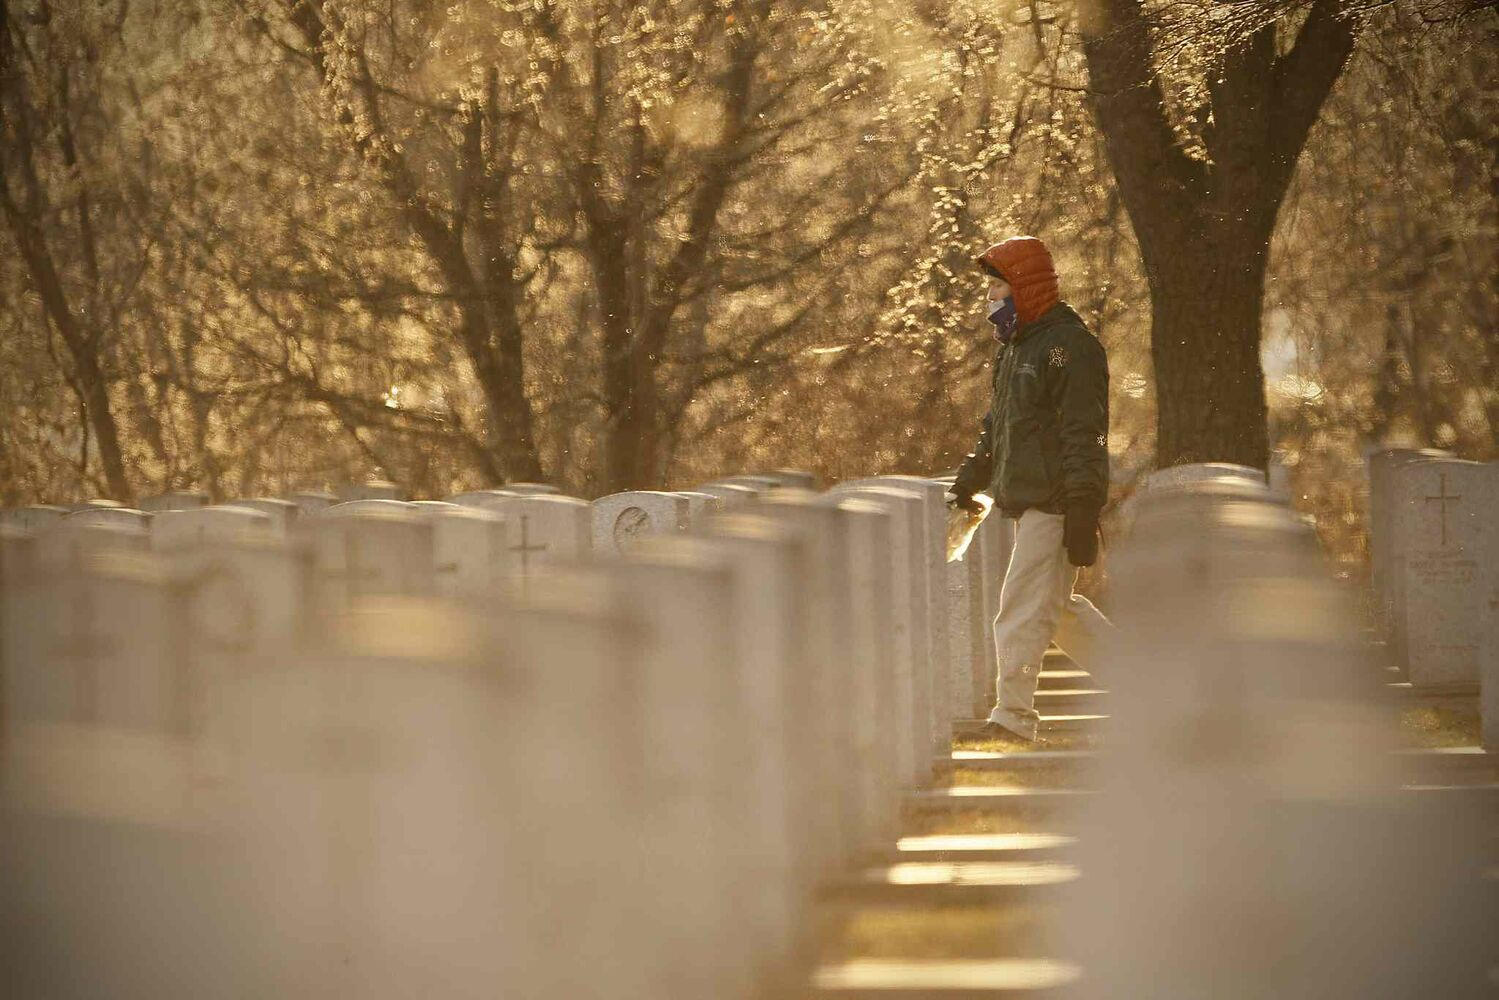 A man walks among the gravestones in Brookside Cemetery in Winnipeg on Remembrance Day. (JOHN WOODS / WINNIPEG FREE PRESS)